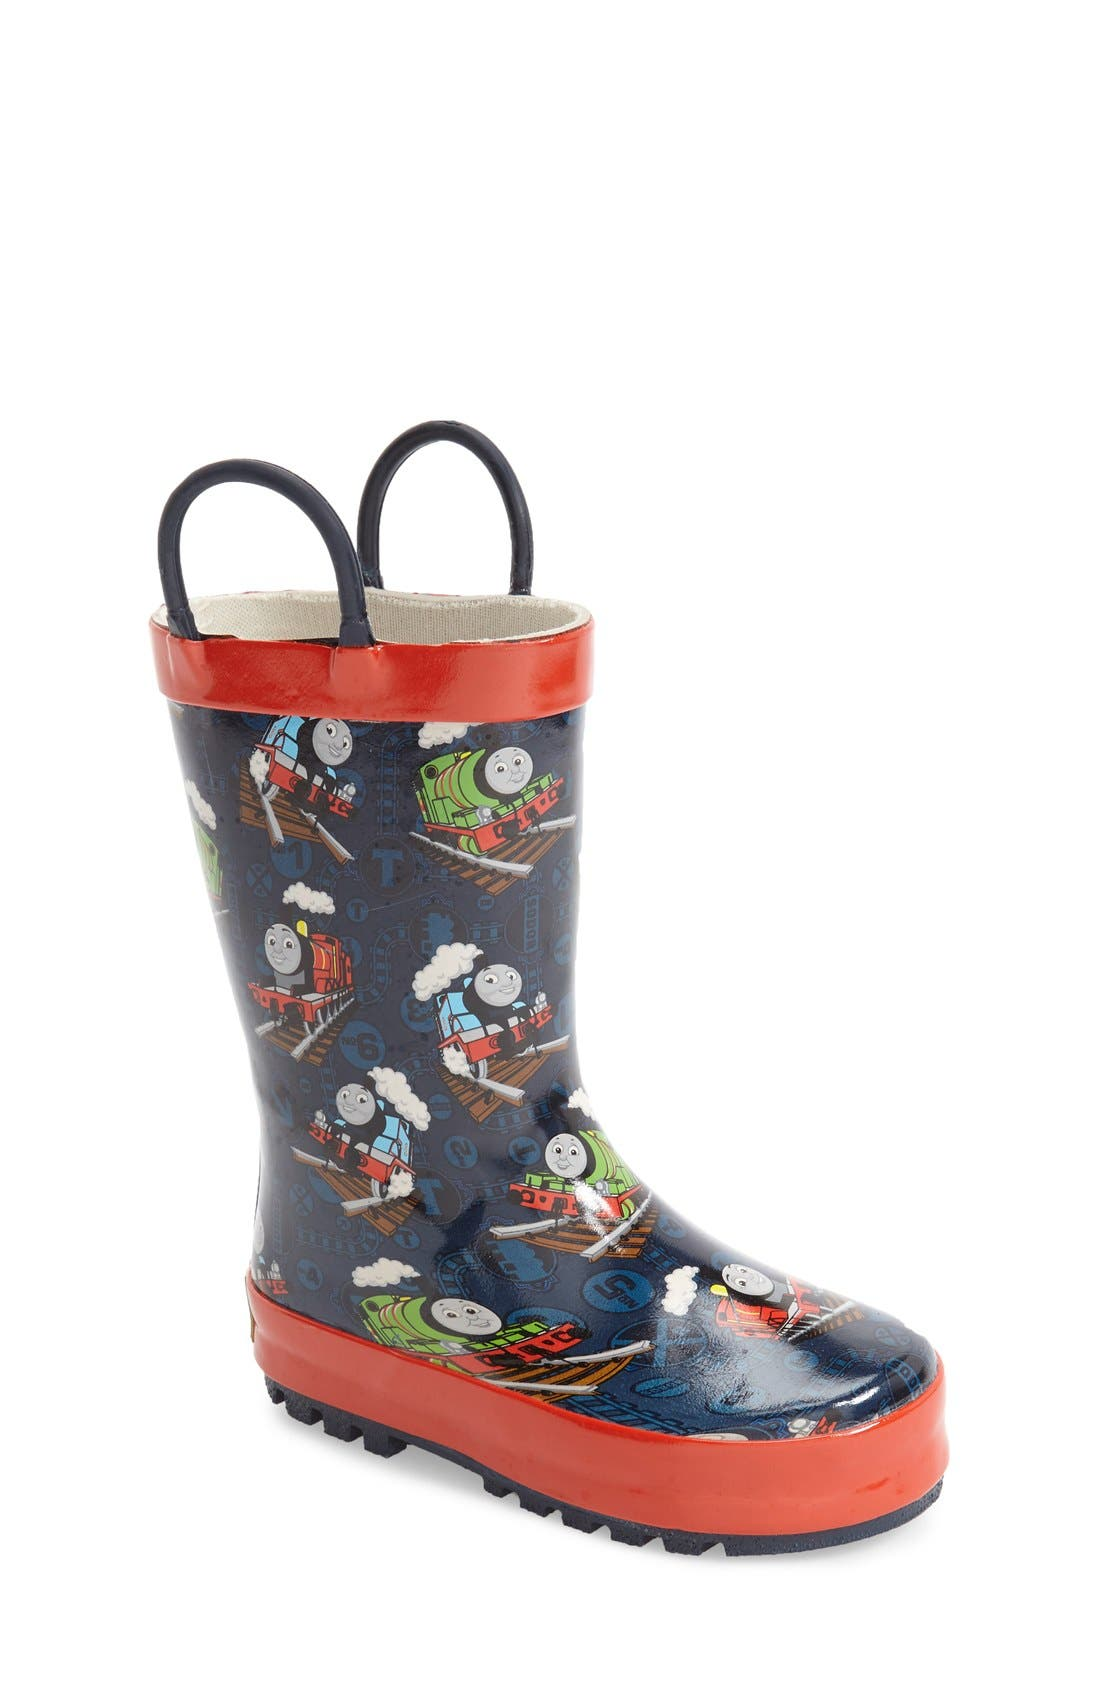 Thomas & Friends<sup>®</sup> Rain Boot,                             Main thumbnail 1, color,                             Navy